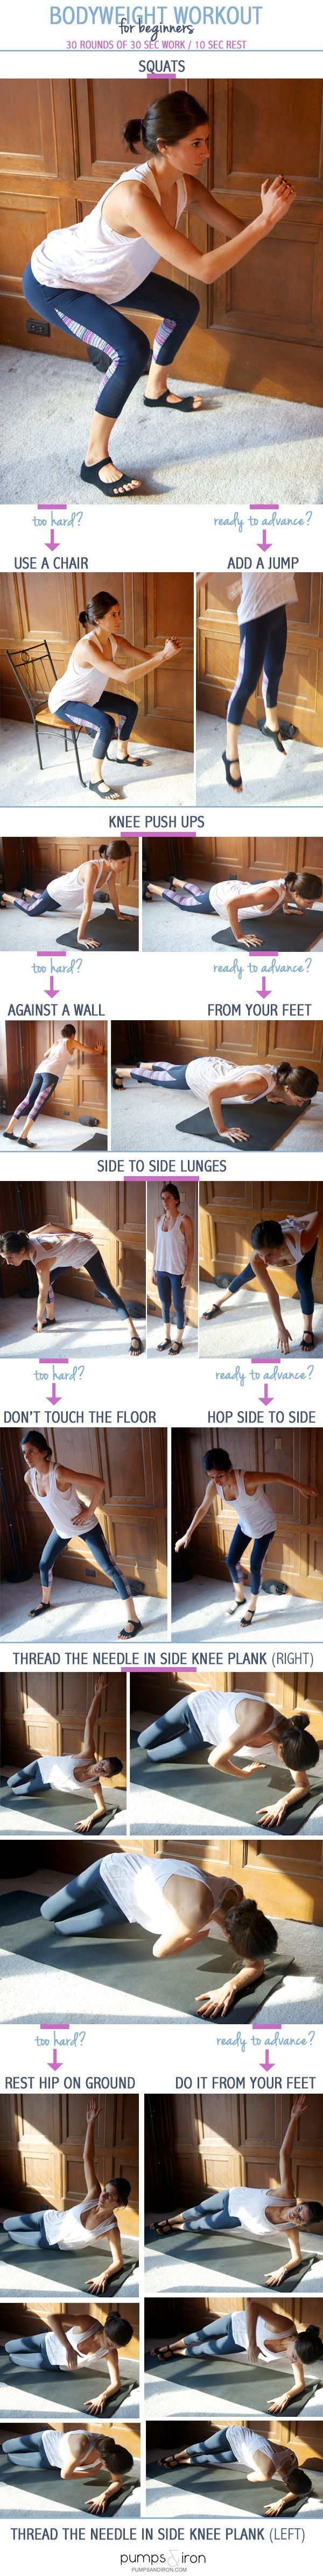 Beginner Bodyweight Interval Workout (with modifications and advancements for each exercise)